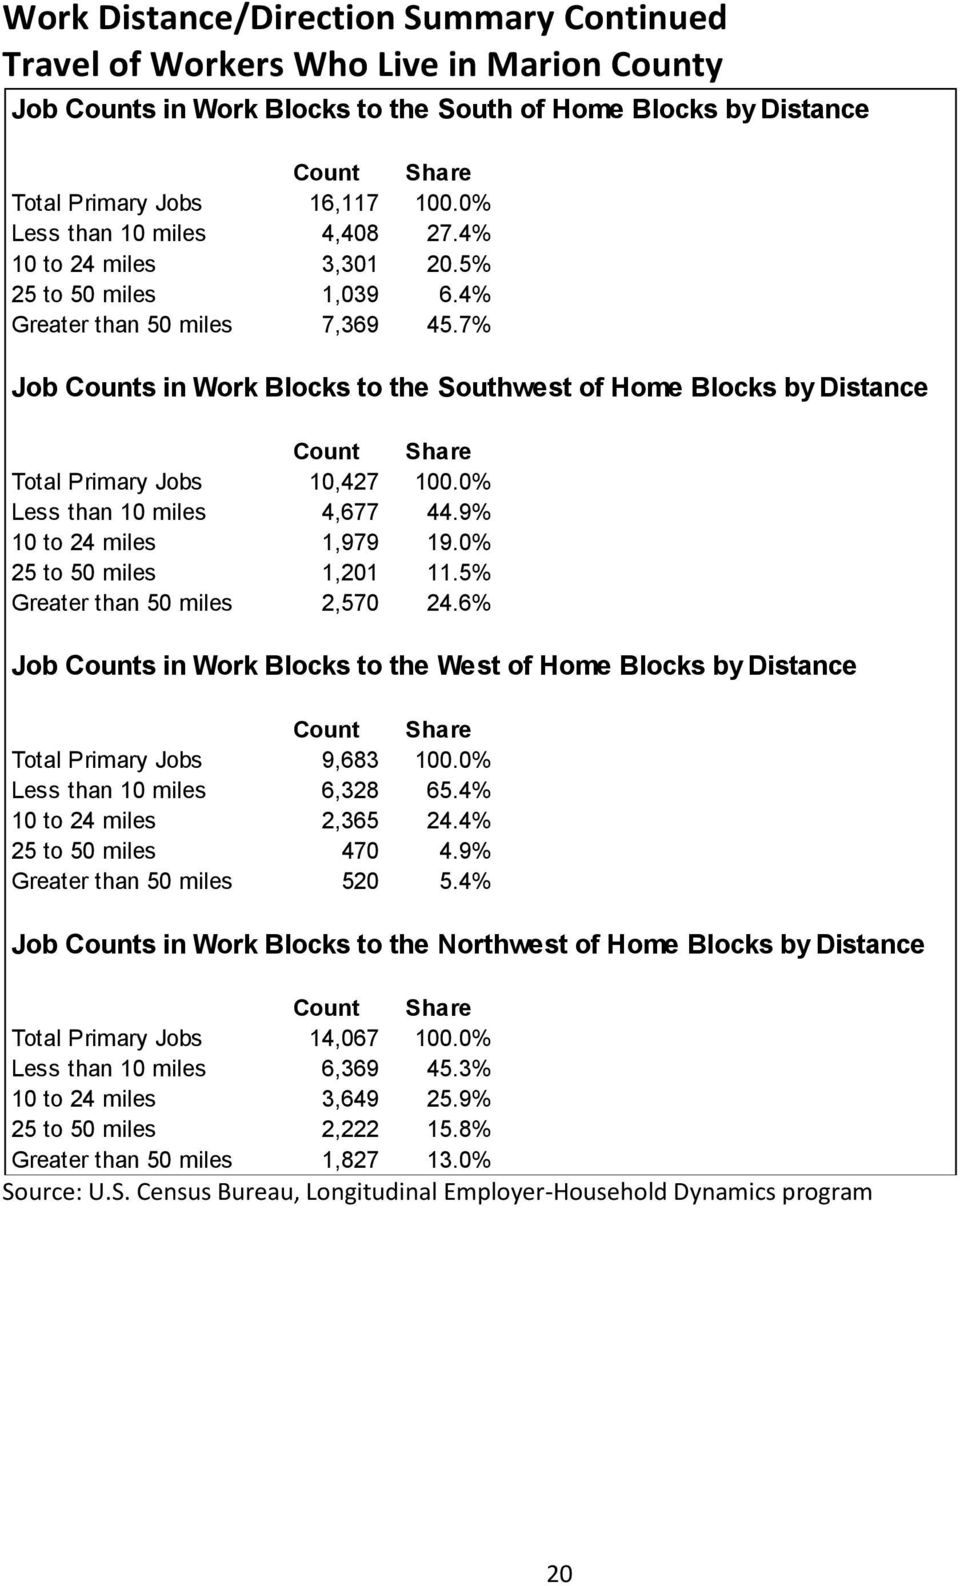 7% Job Counts in Work Blocks to the Southwest of Home Blocks by Distance Total Primary Jobs 10,427 100.0% Less than 10 miles 4,677 44.9% 10 to 24 miles 1,979 19.0% 25 to 50 miles 1,201 11.